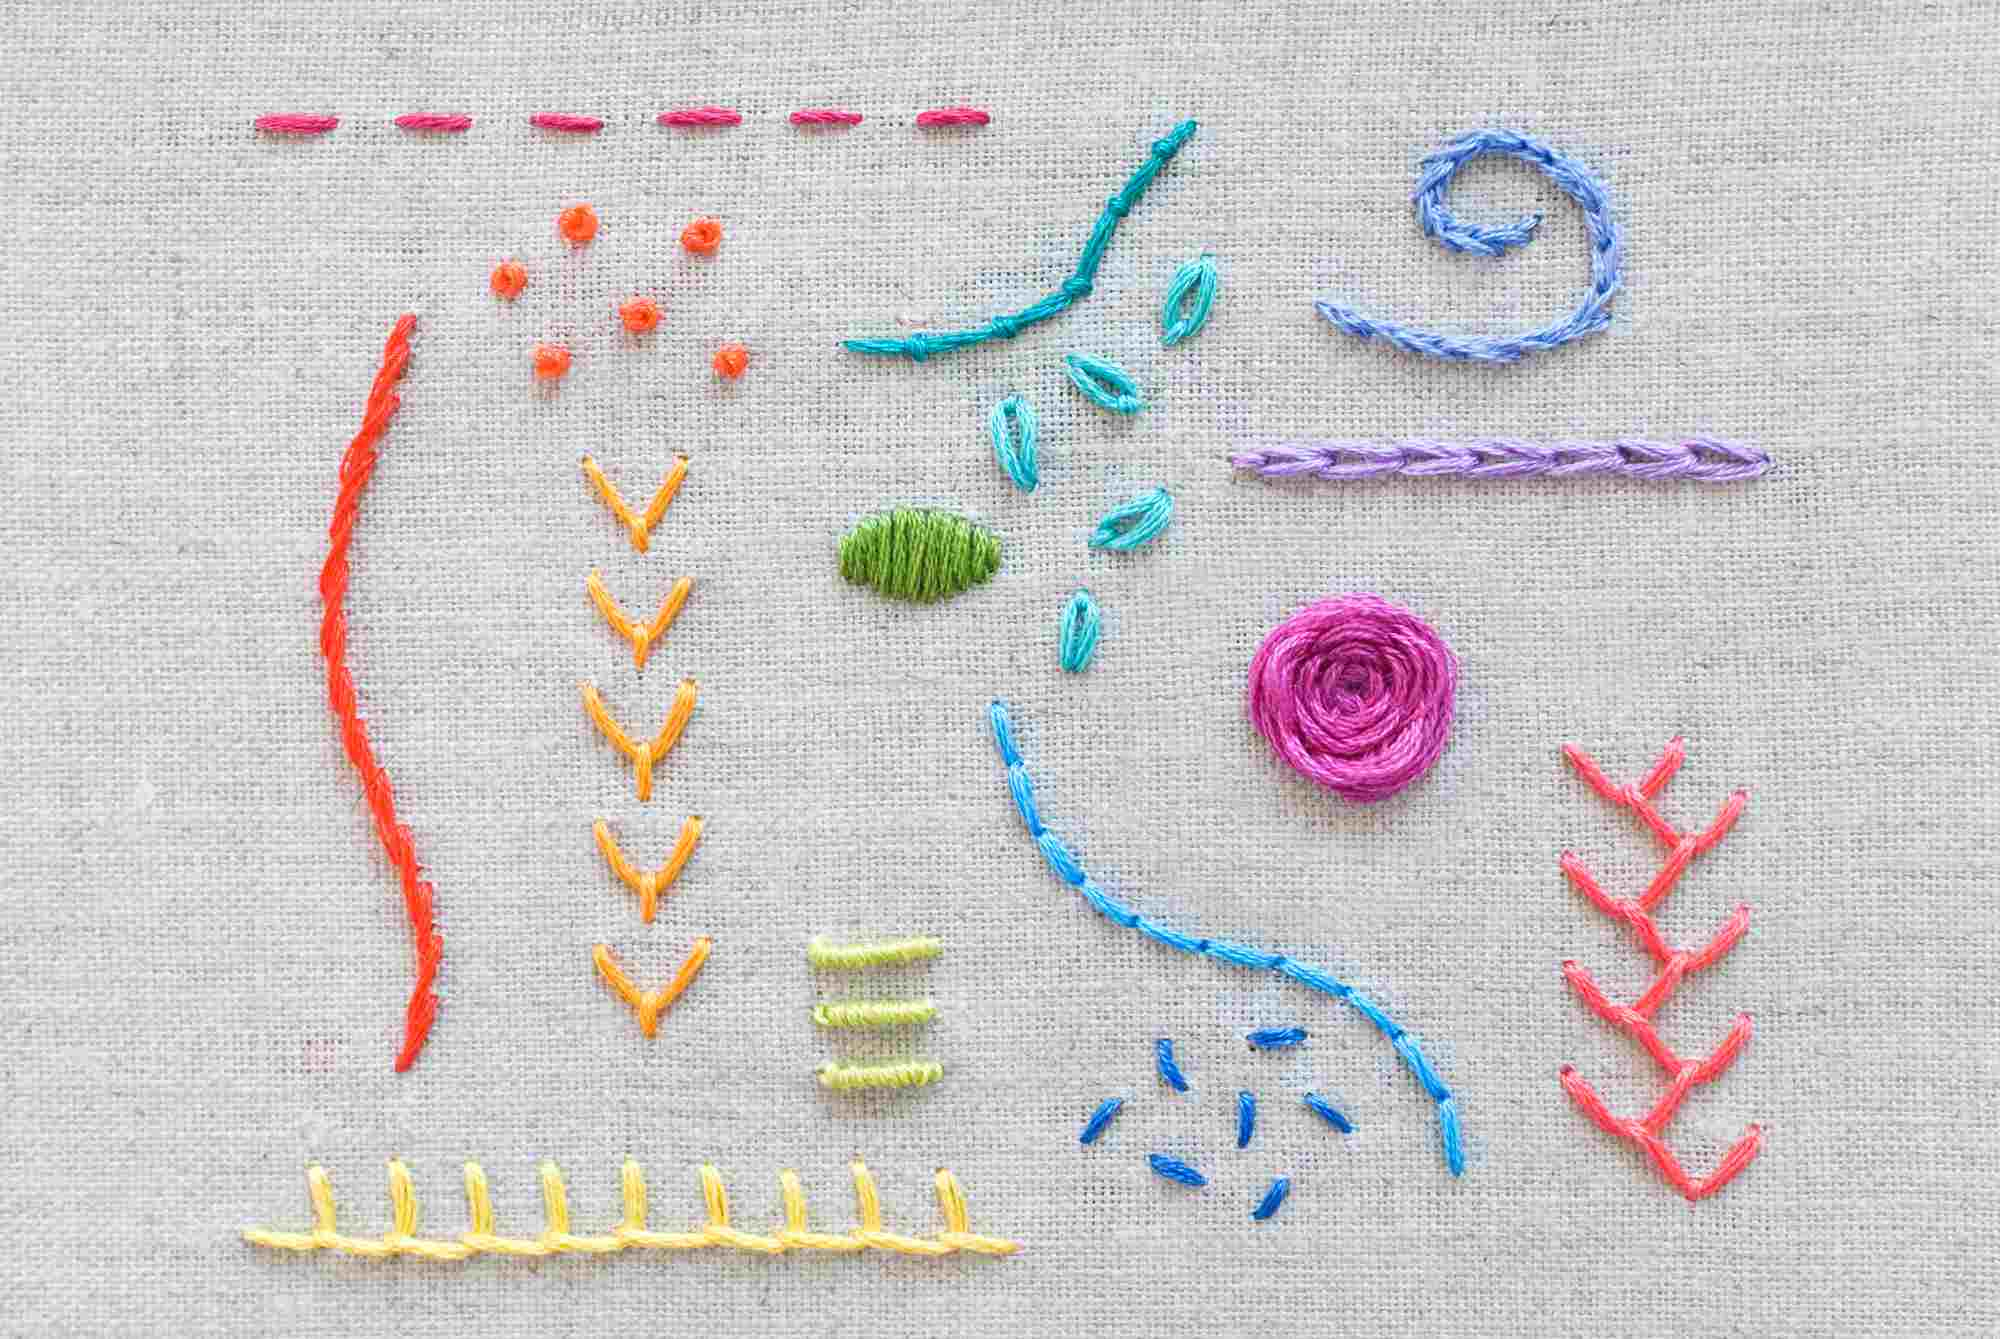 How To Make Embroidery Patterns 15 Stitches Every Embroiderer Should Know